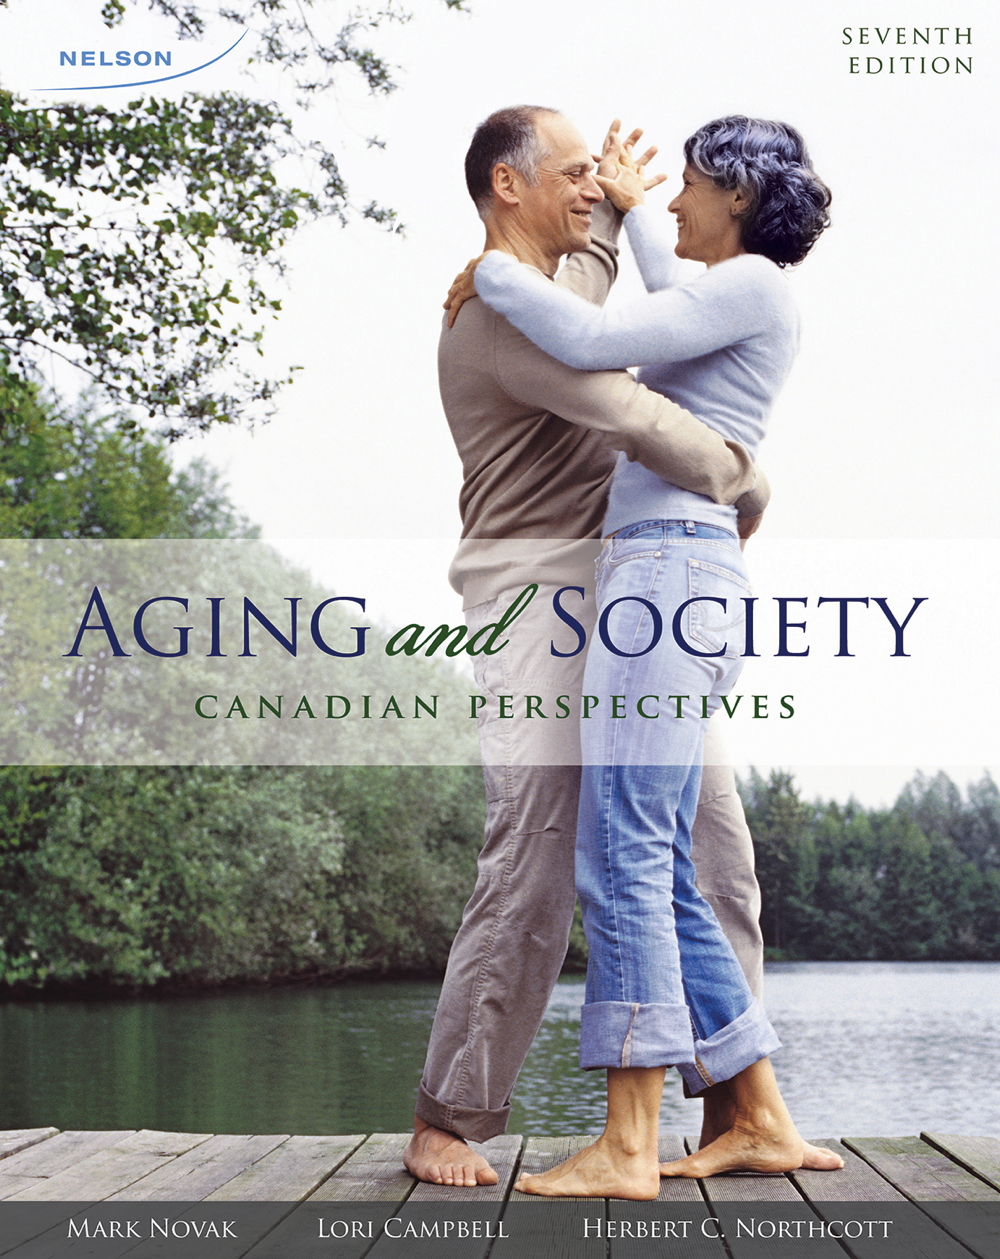 Aging and Society: Canadian Perspectives - 9780176562267